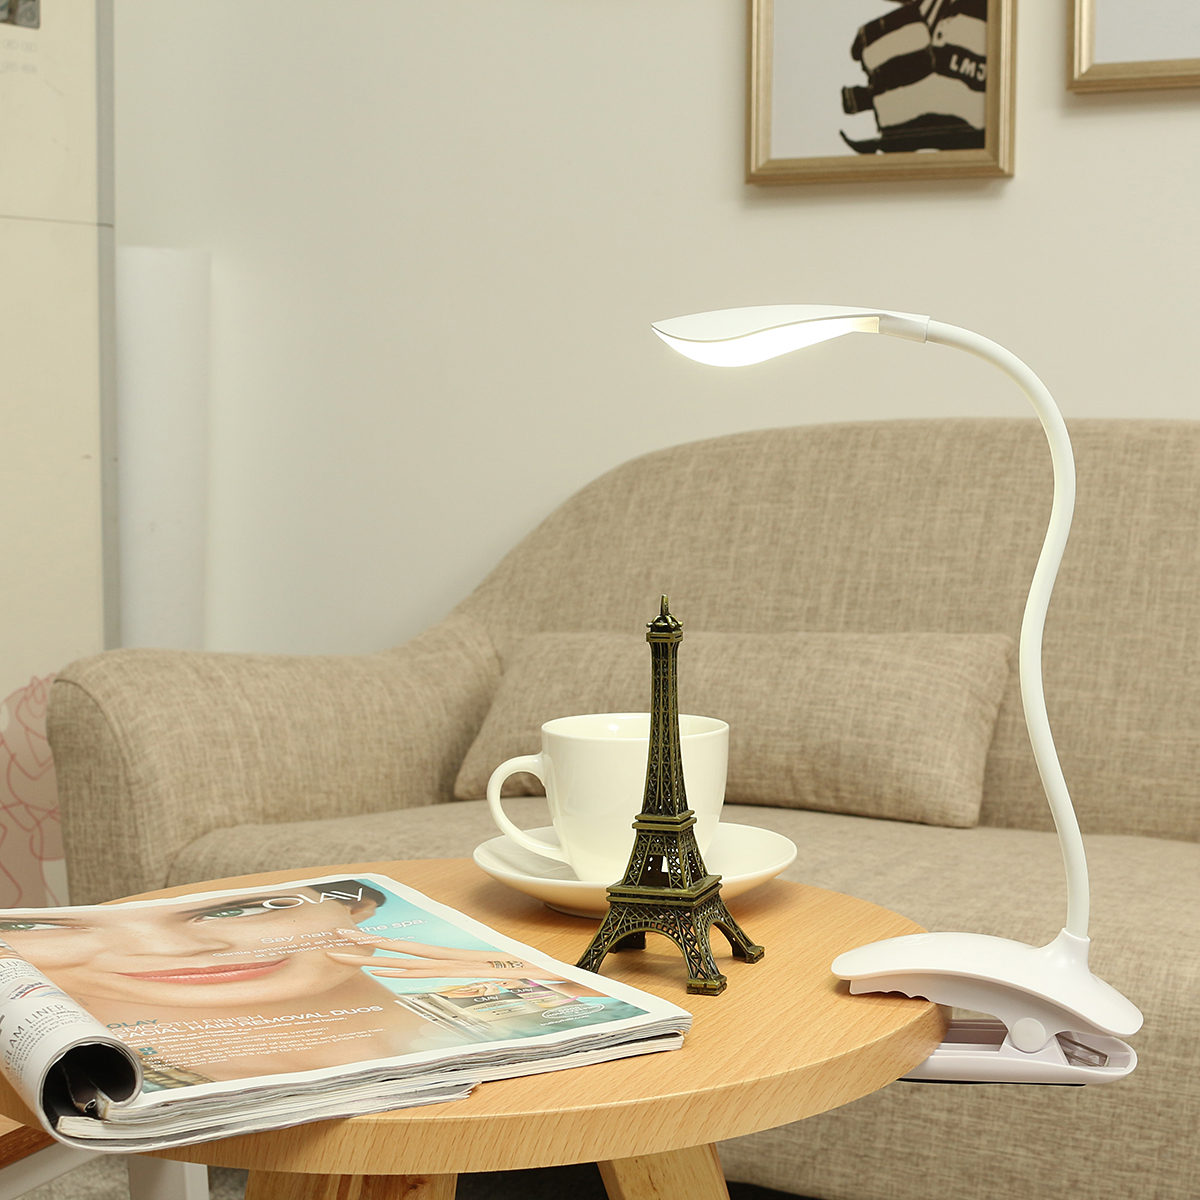 1W USB LED Desk Lamp Rechargeable Table Lamp Touch Sensor Dimmable Table Light For Children Study